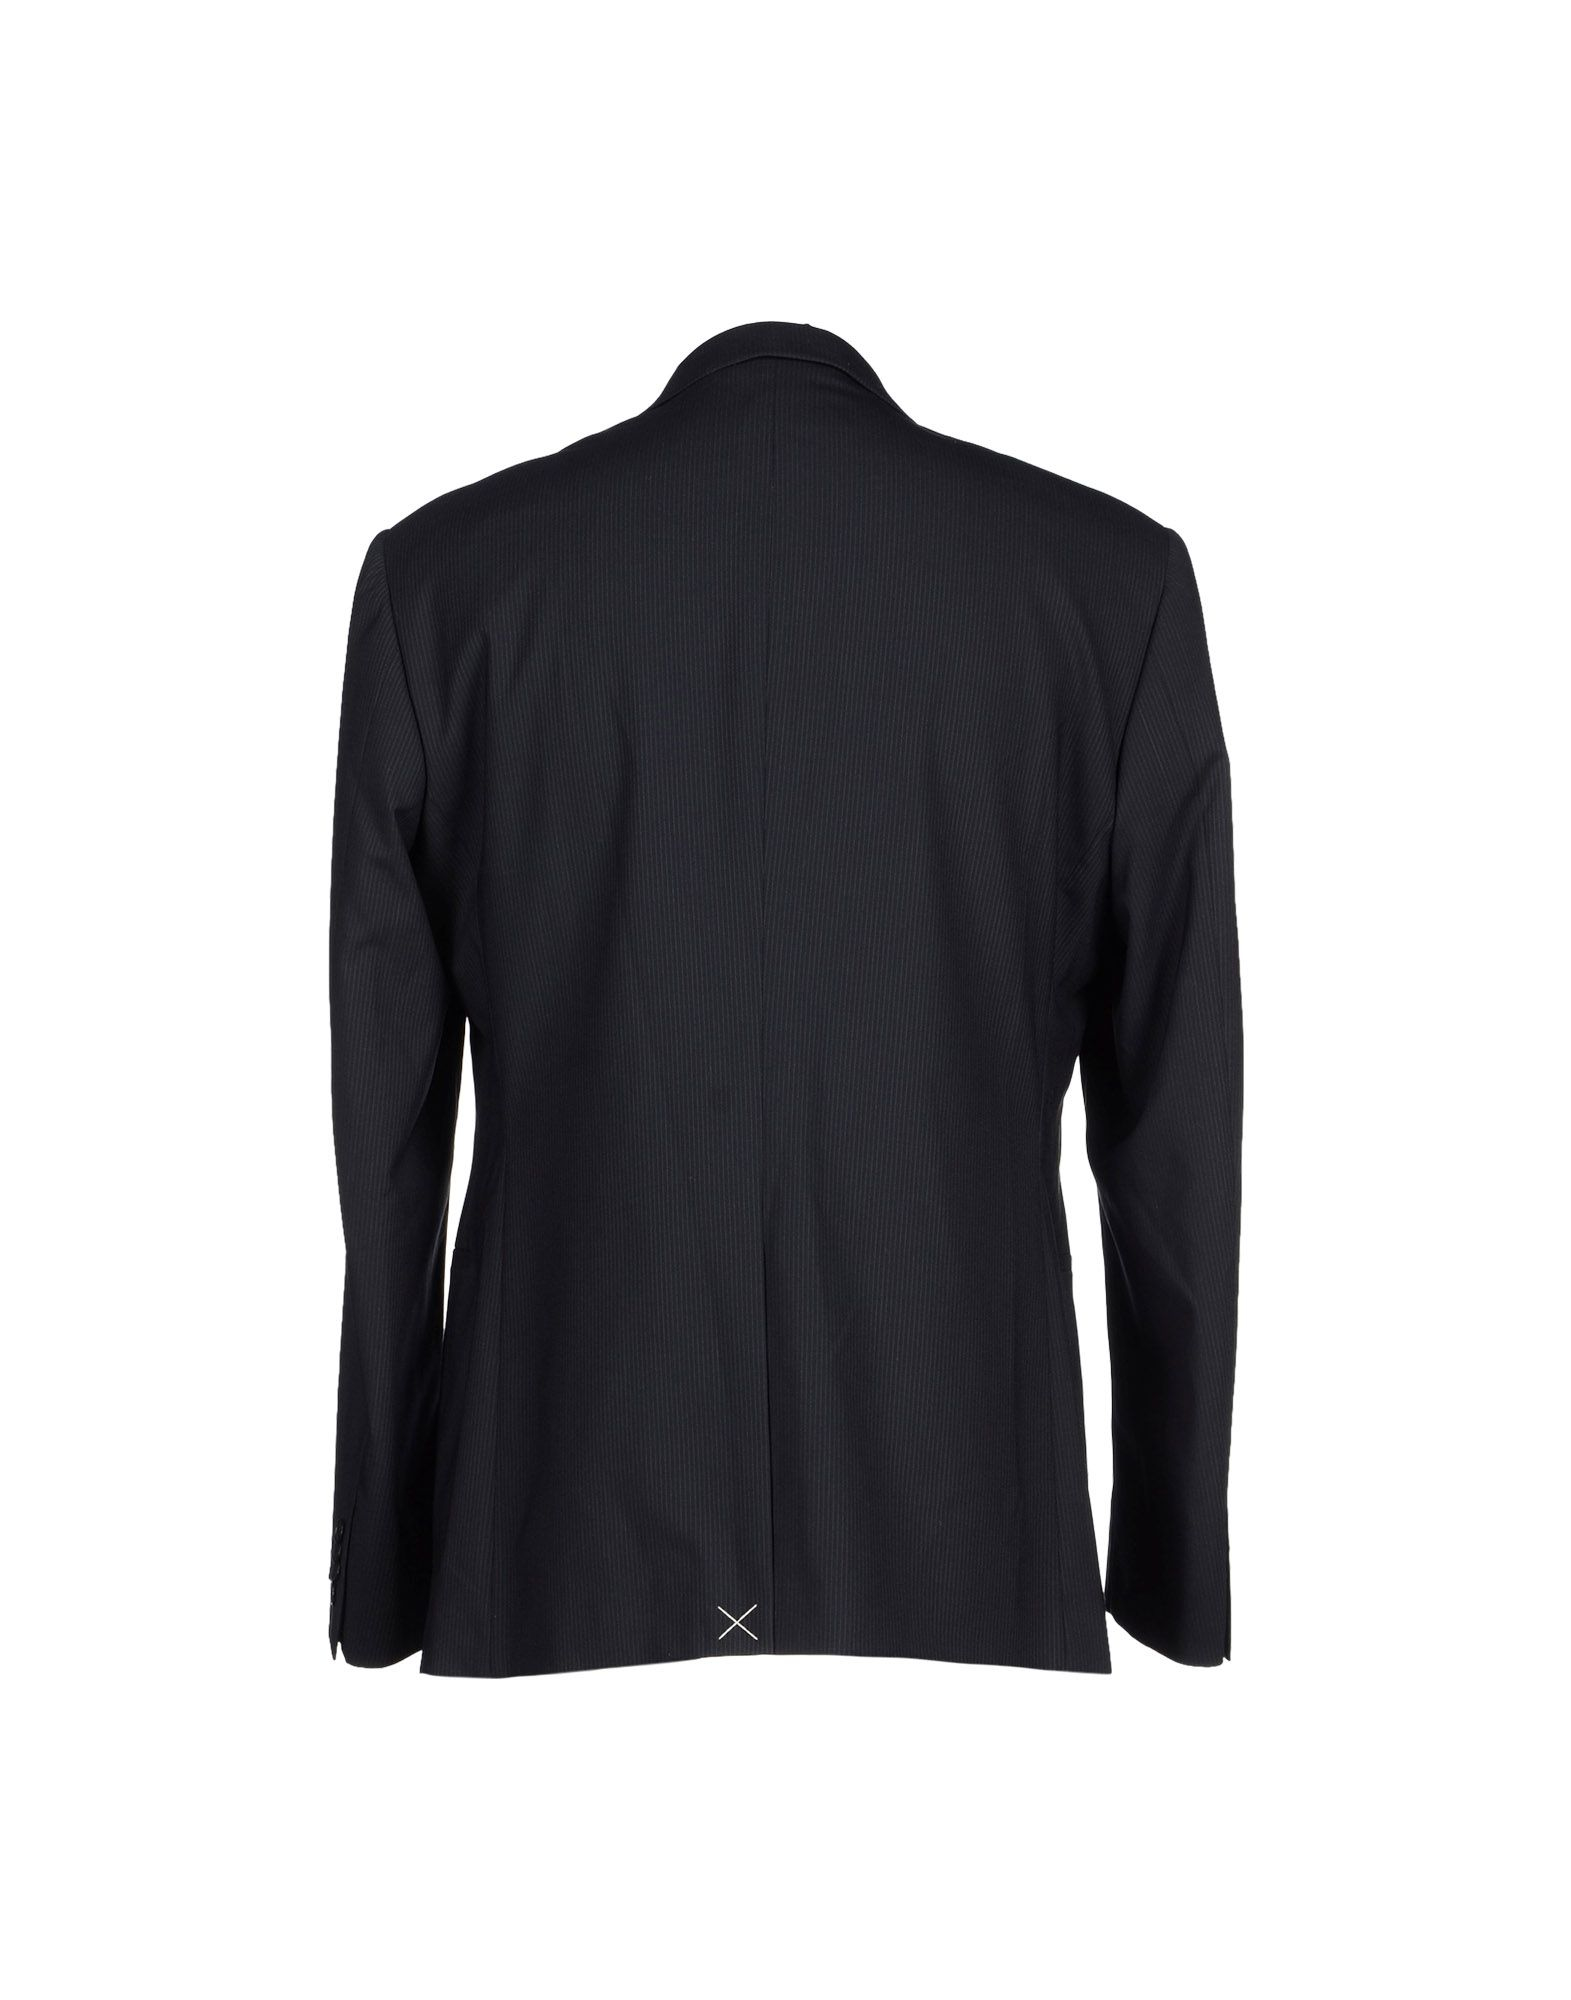 mollusk christian single men ⇒ get cheap mollusk heavy terry crew sweatshirt - men's compare prices and intensely nicemollusk heavy terry crew sweatshirt - men's  and online store for each and every occasion deal in now for t.